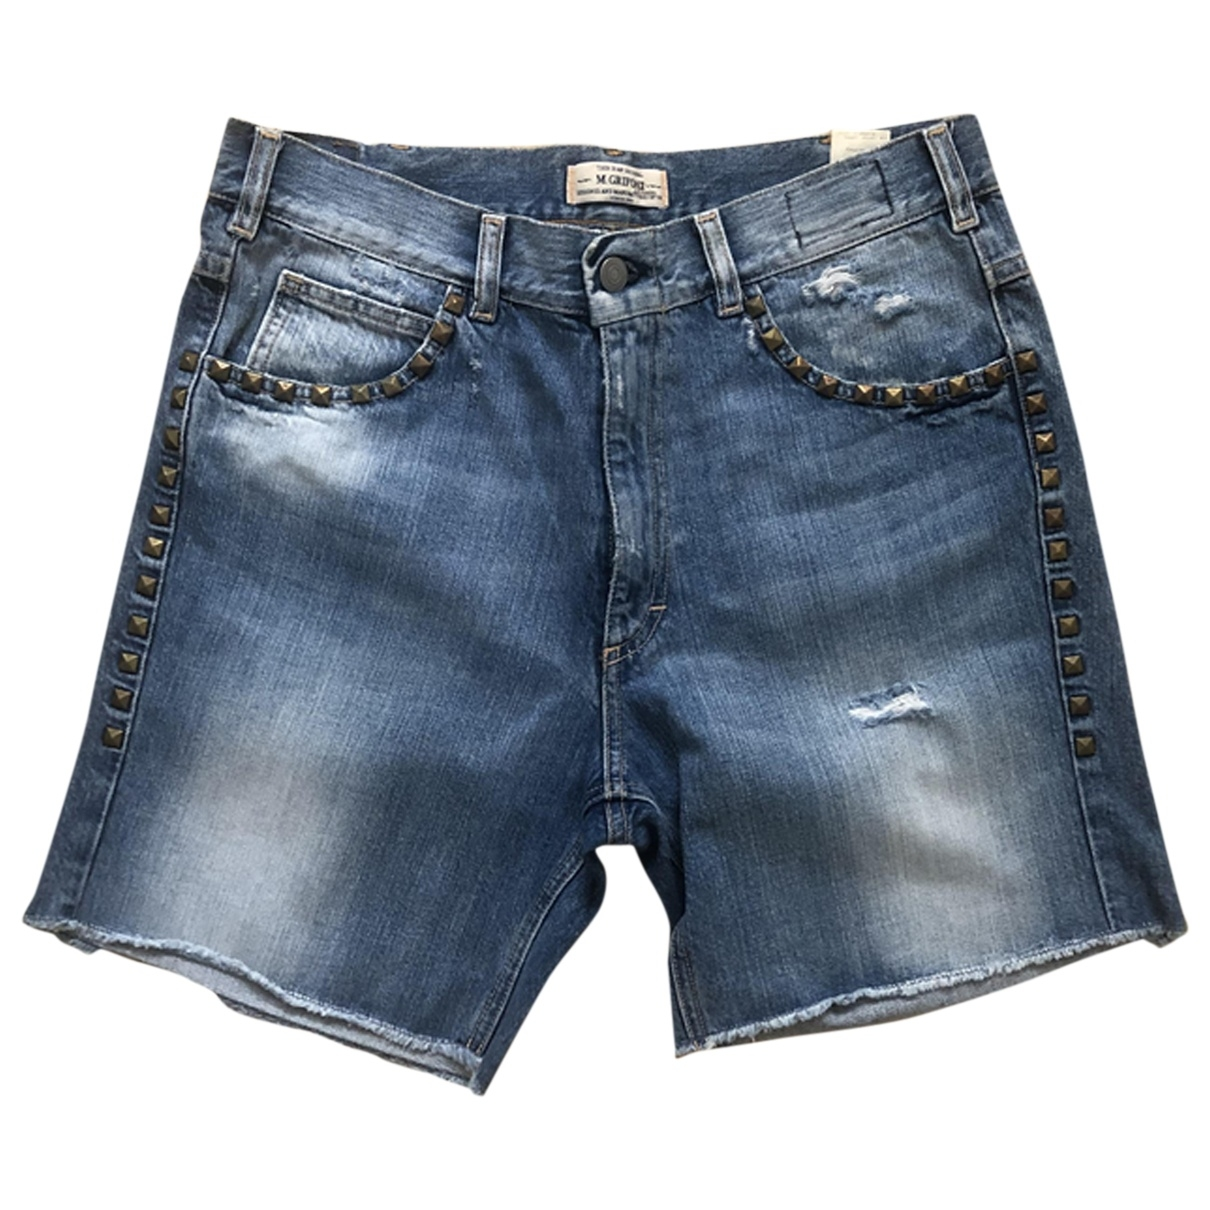 Mauro Grifoni \N Denim - Jeans Shorts for Women 42 IT